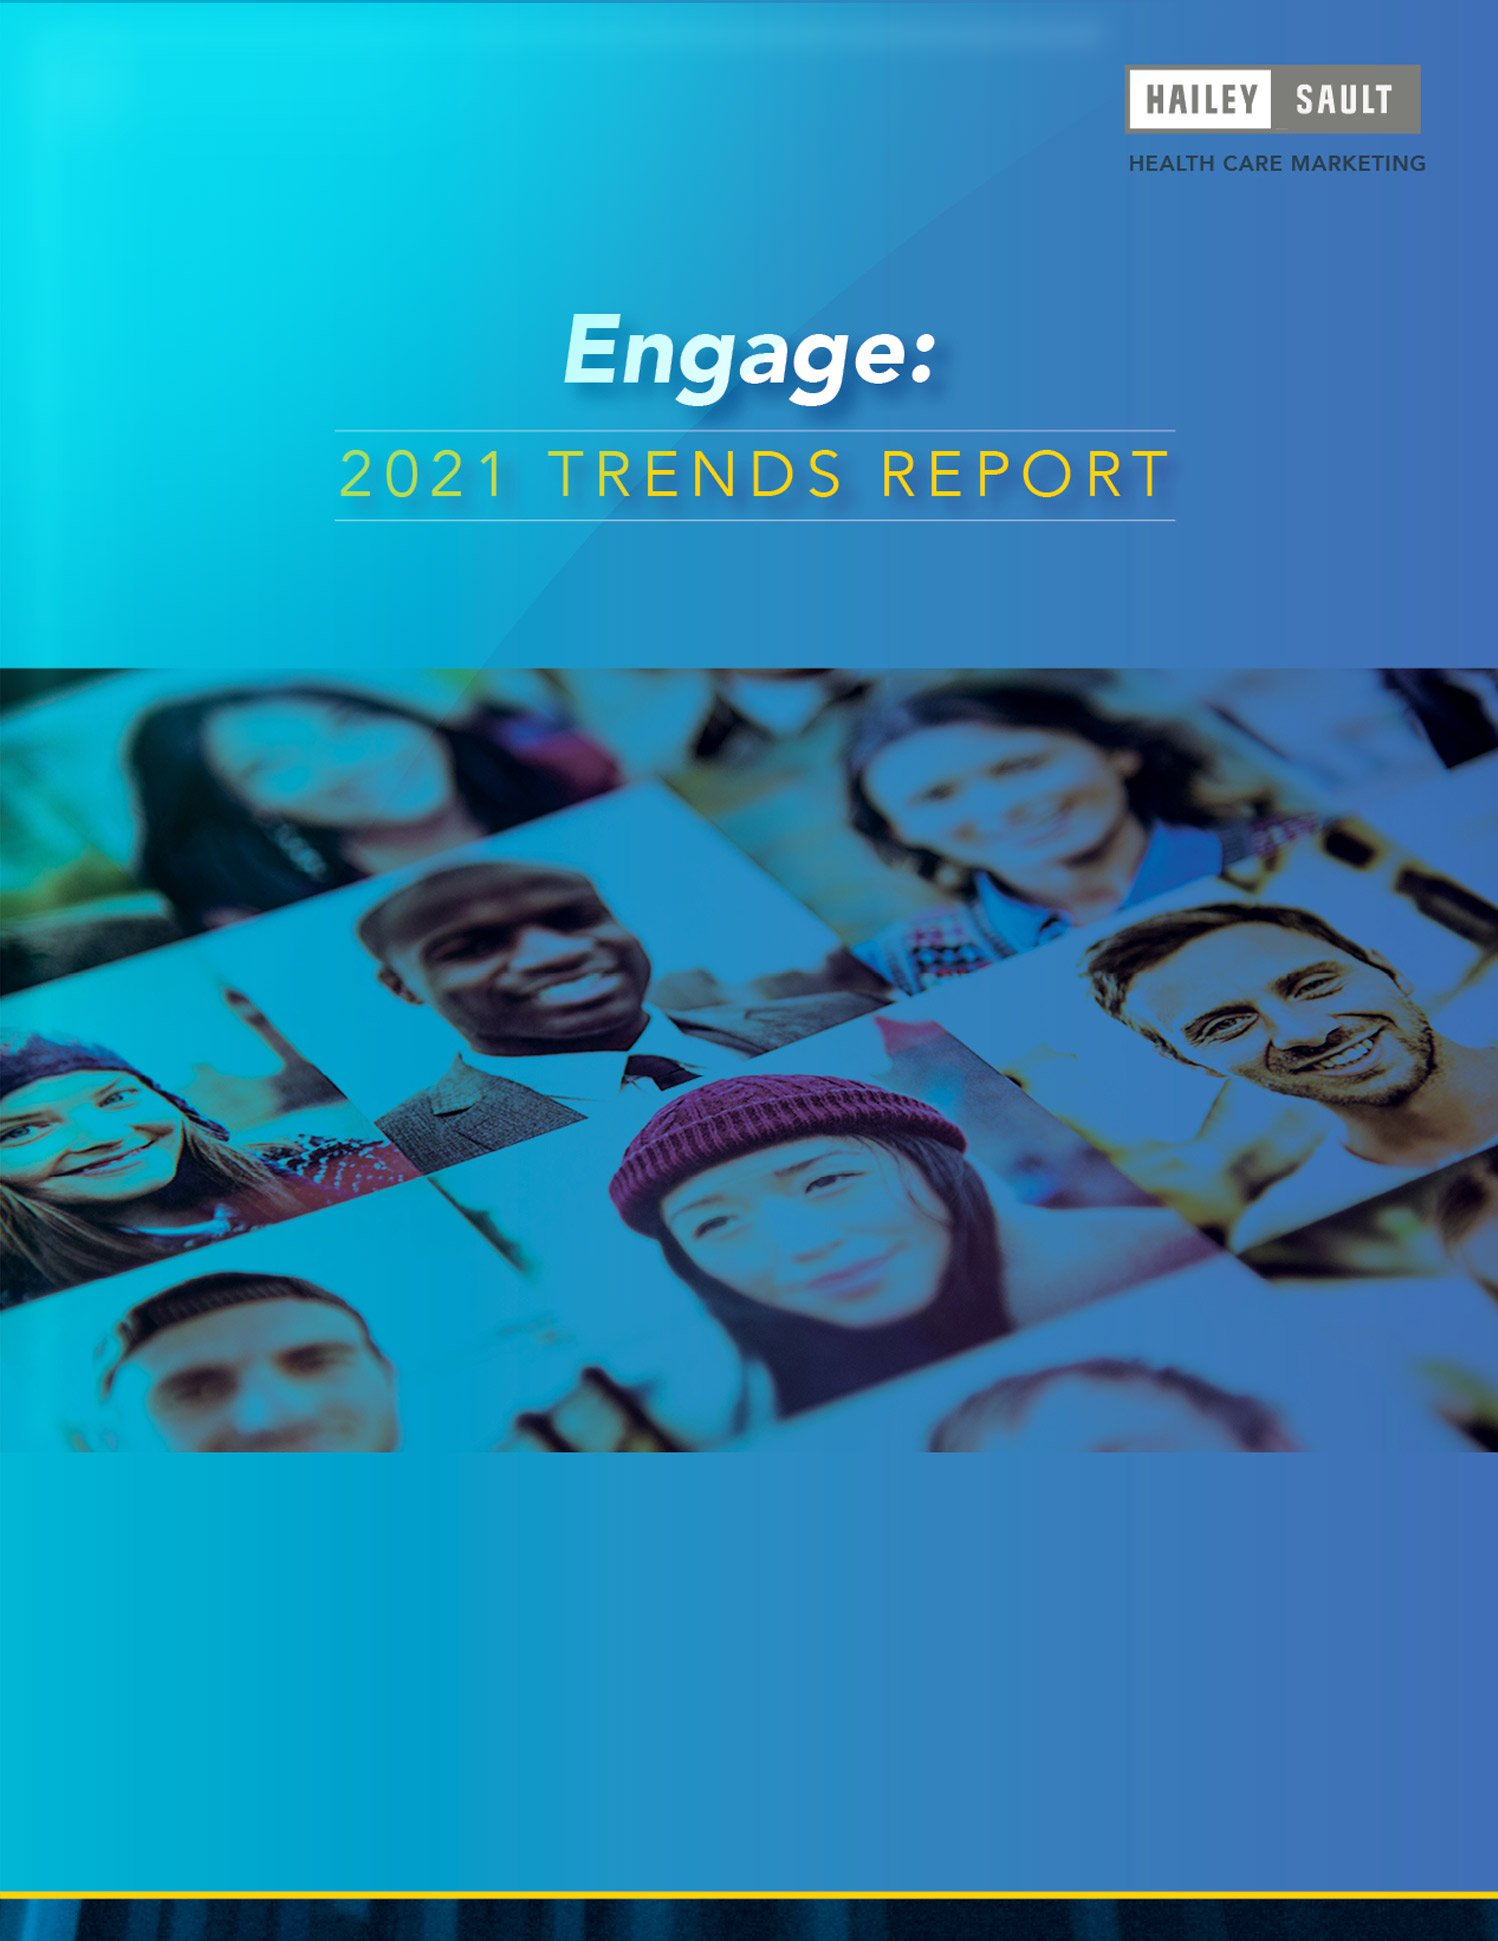 Engage 2021 Trends Report